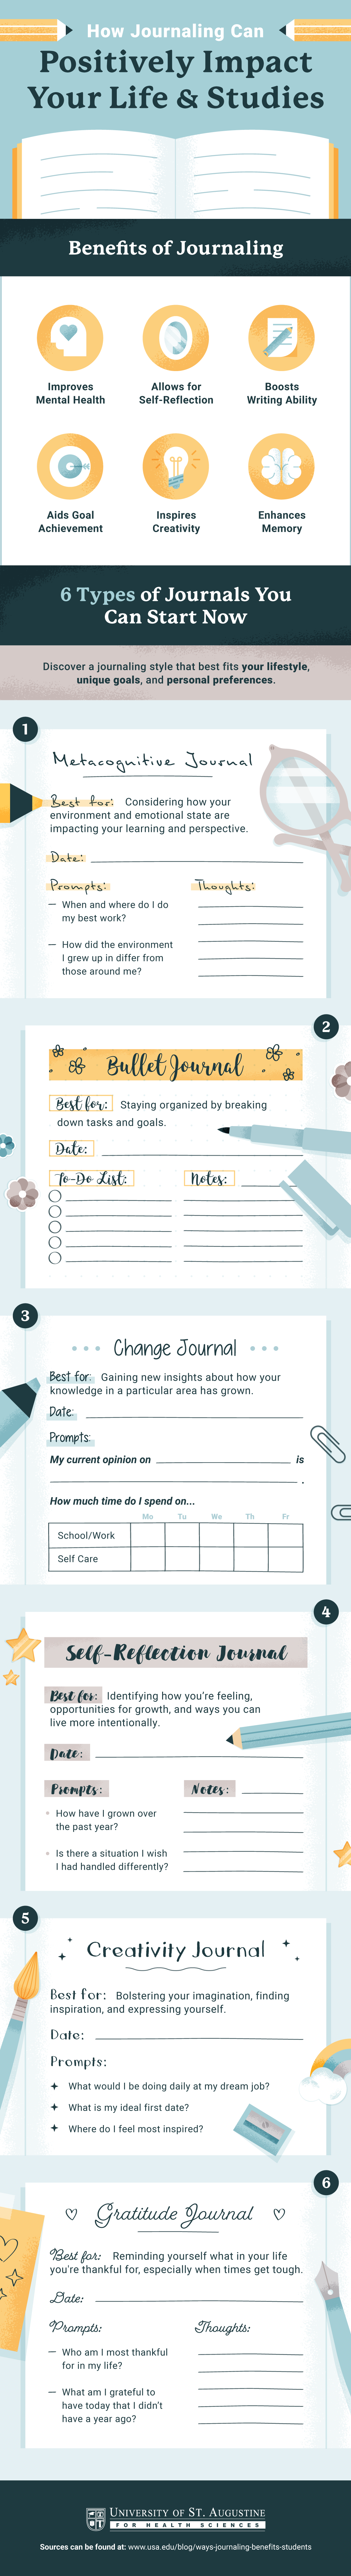 Benefits of Journaling Infographic